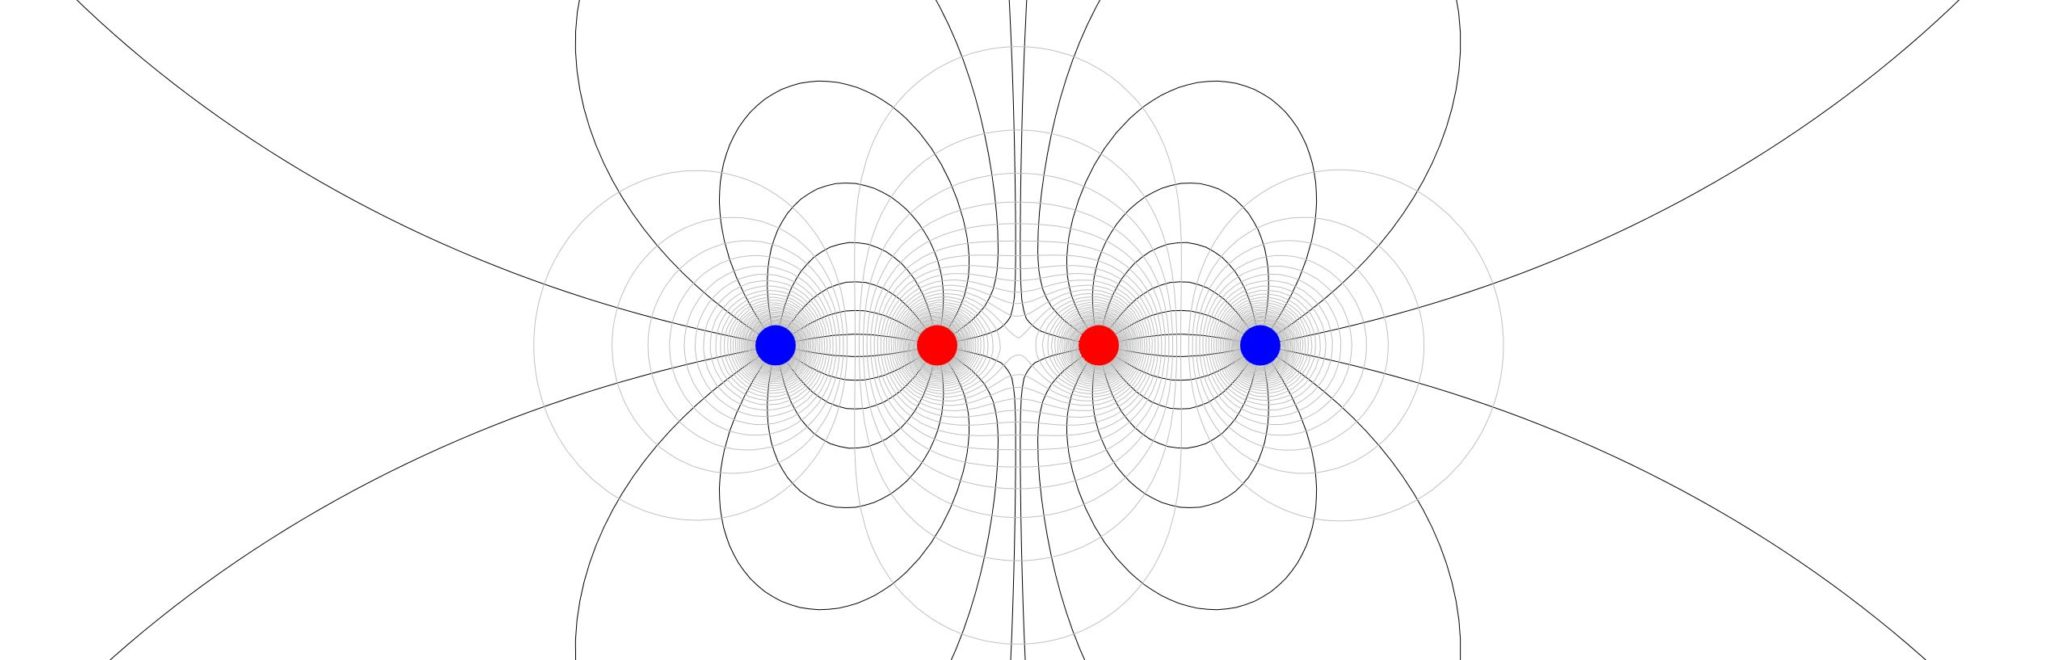 electric field lines computational physics